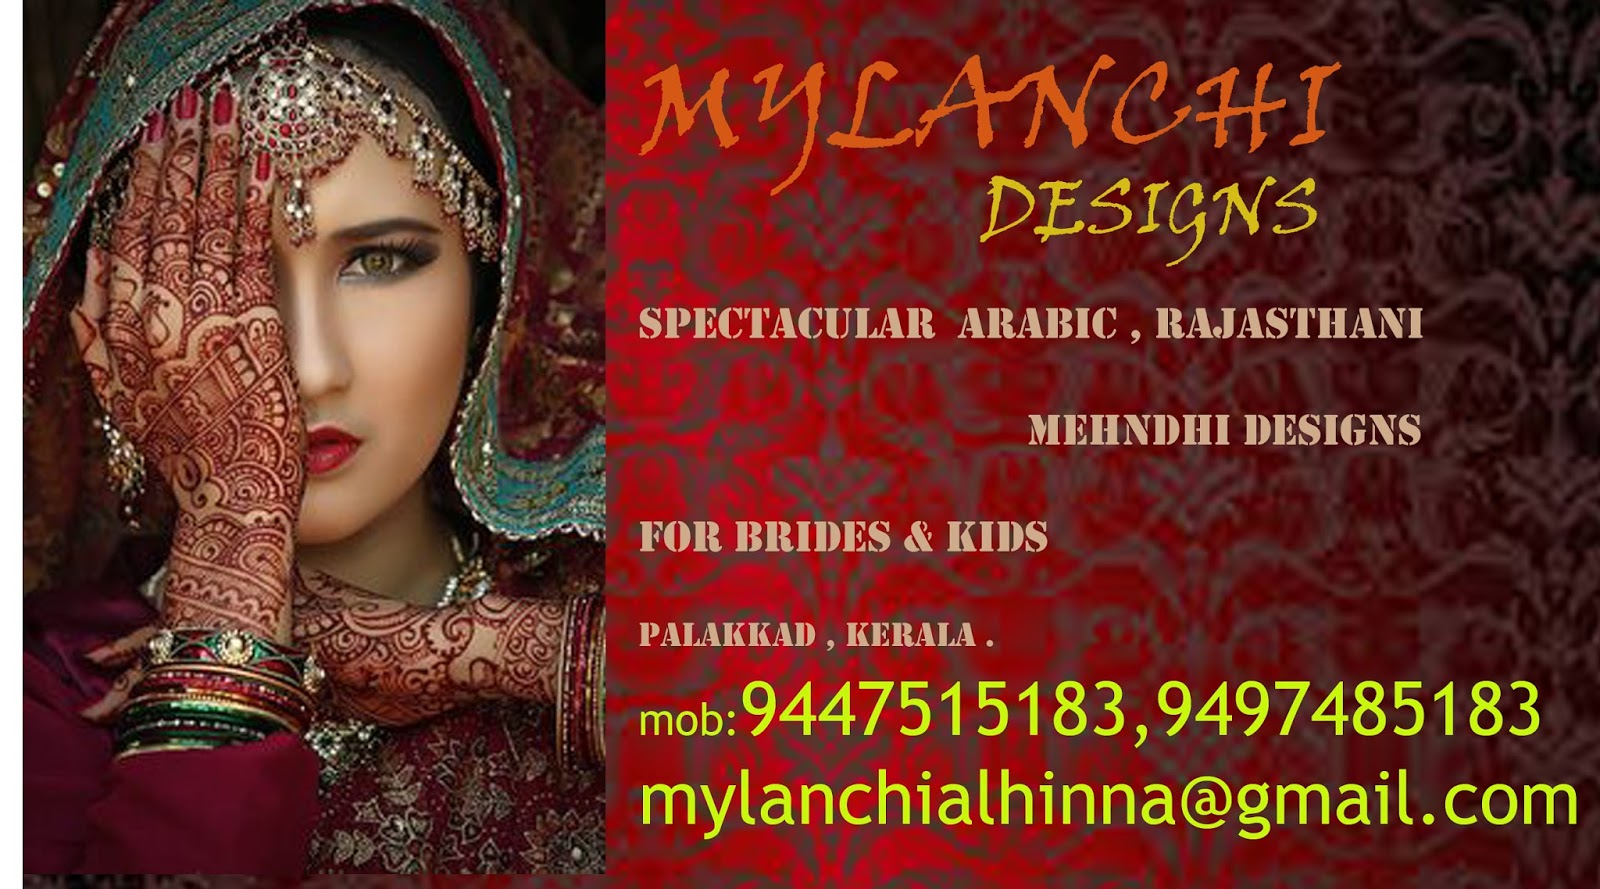 Mehndhi Designs For Bride KidsArabic Amp Rajasthani At Palakkad